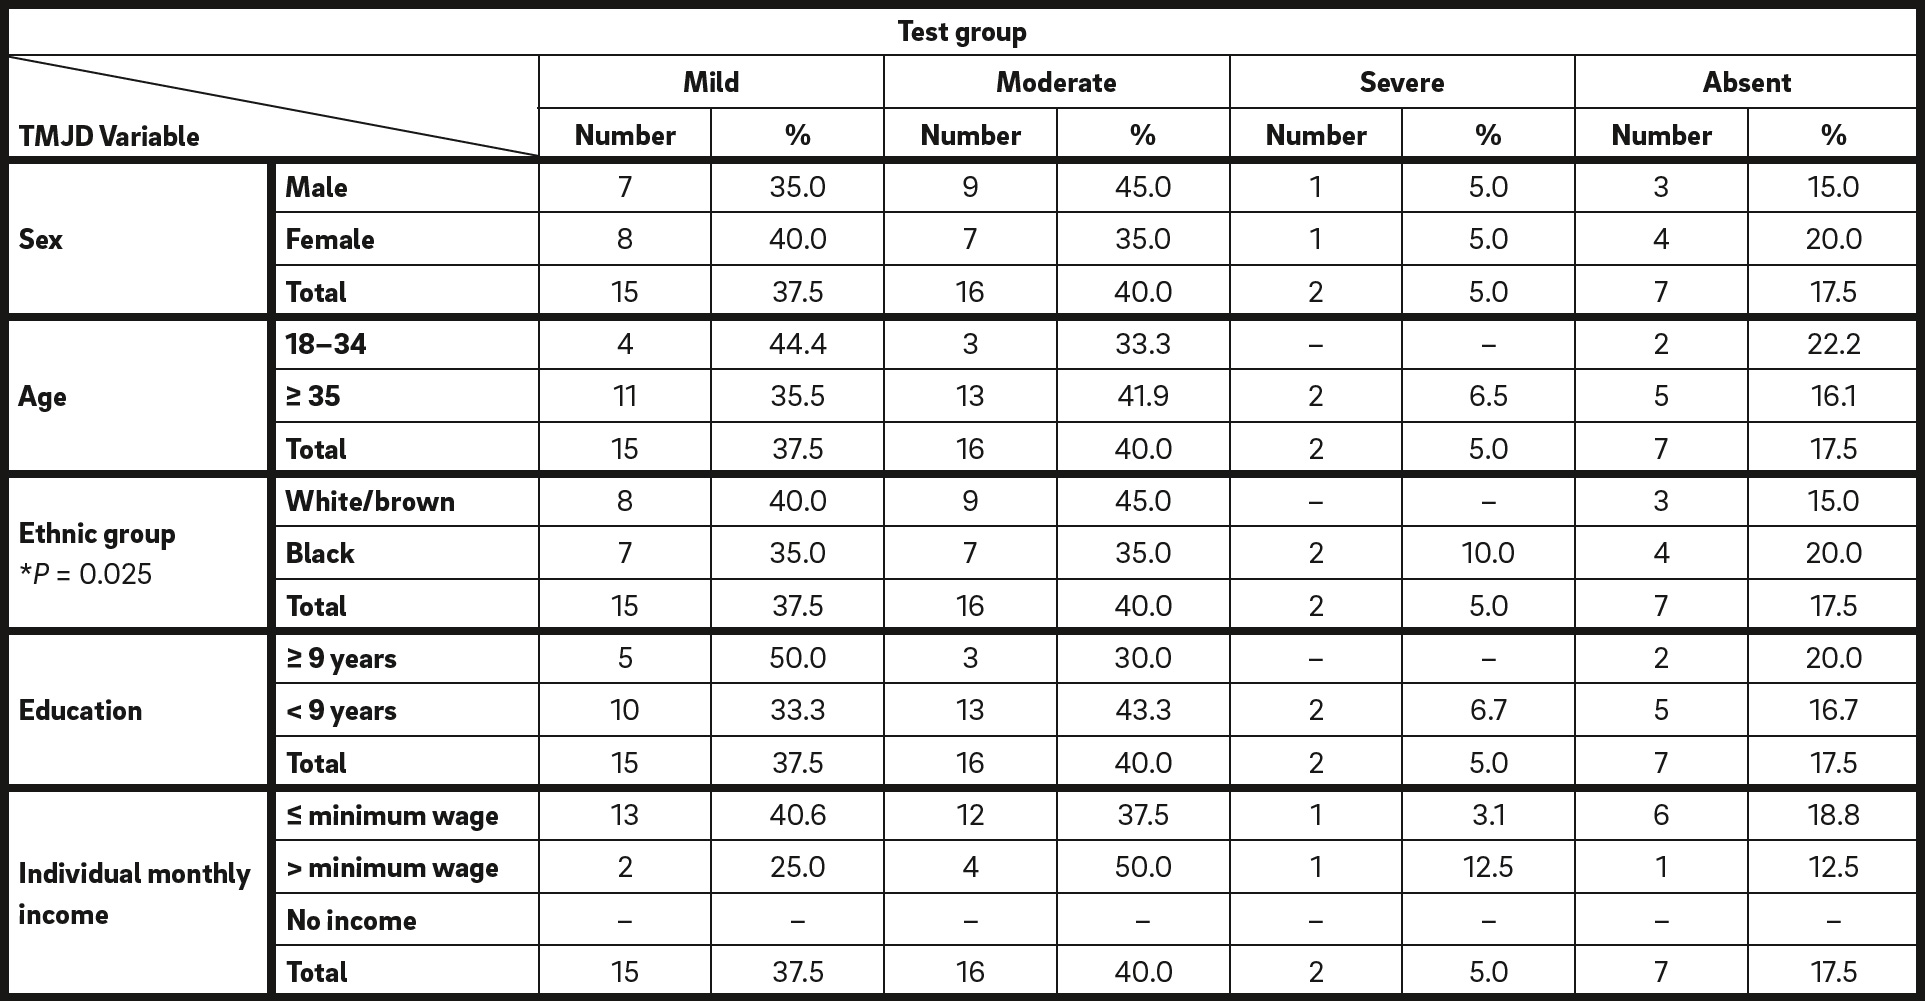 Table 3 Absolute and relative values of the test group according to the association between the sociodemographic variablesand the severity levels of temporomandibular dysfunction.